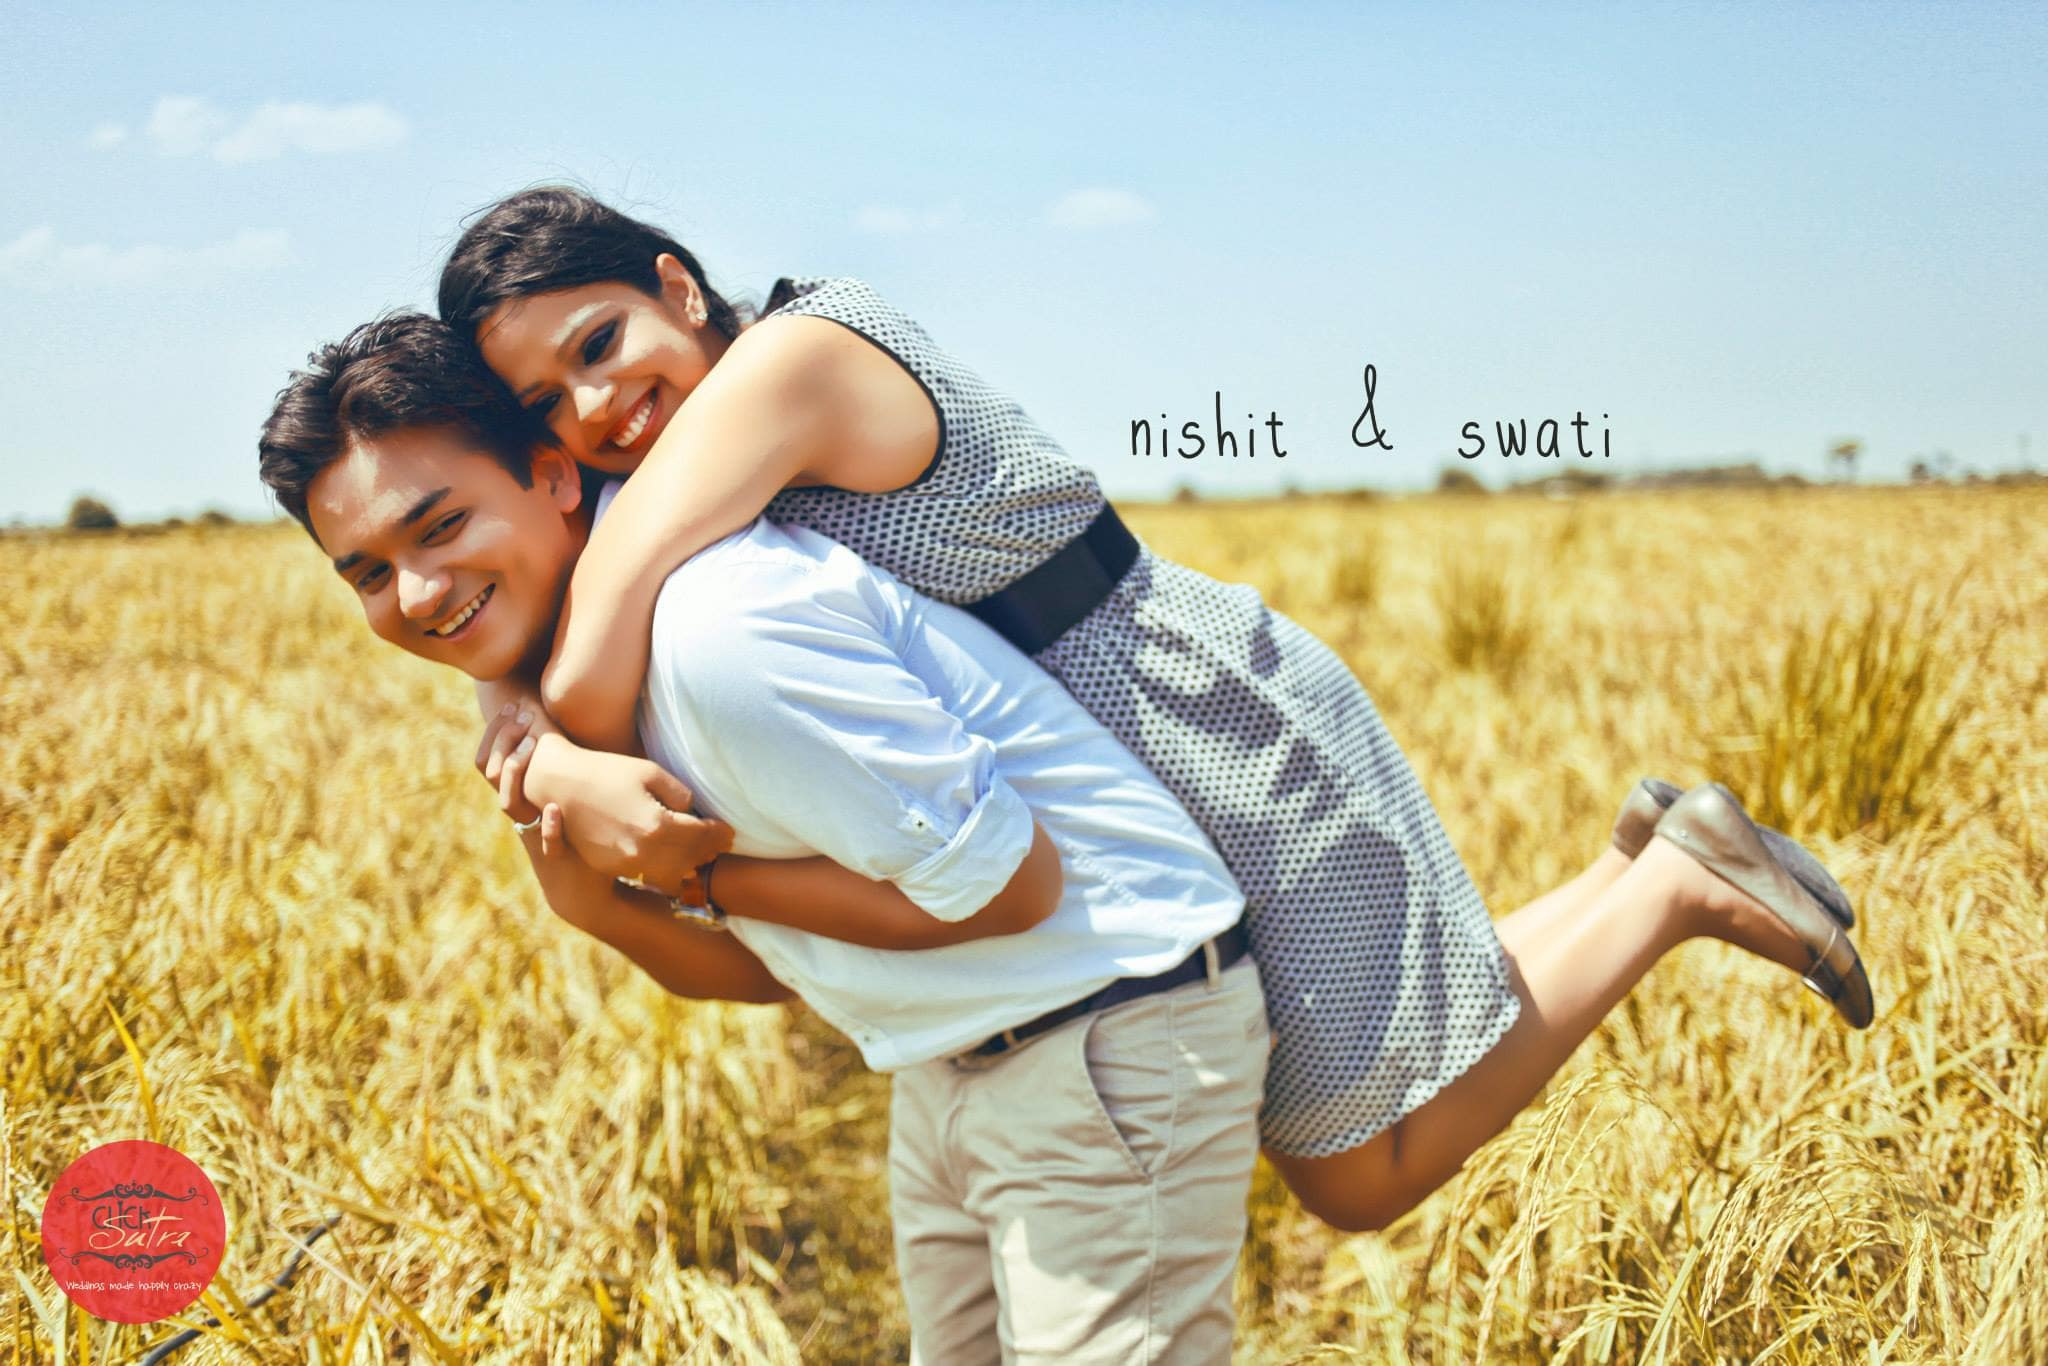 pre wedding photographs:click sutra